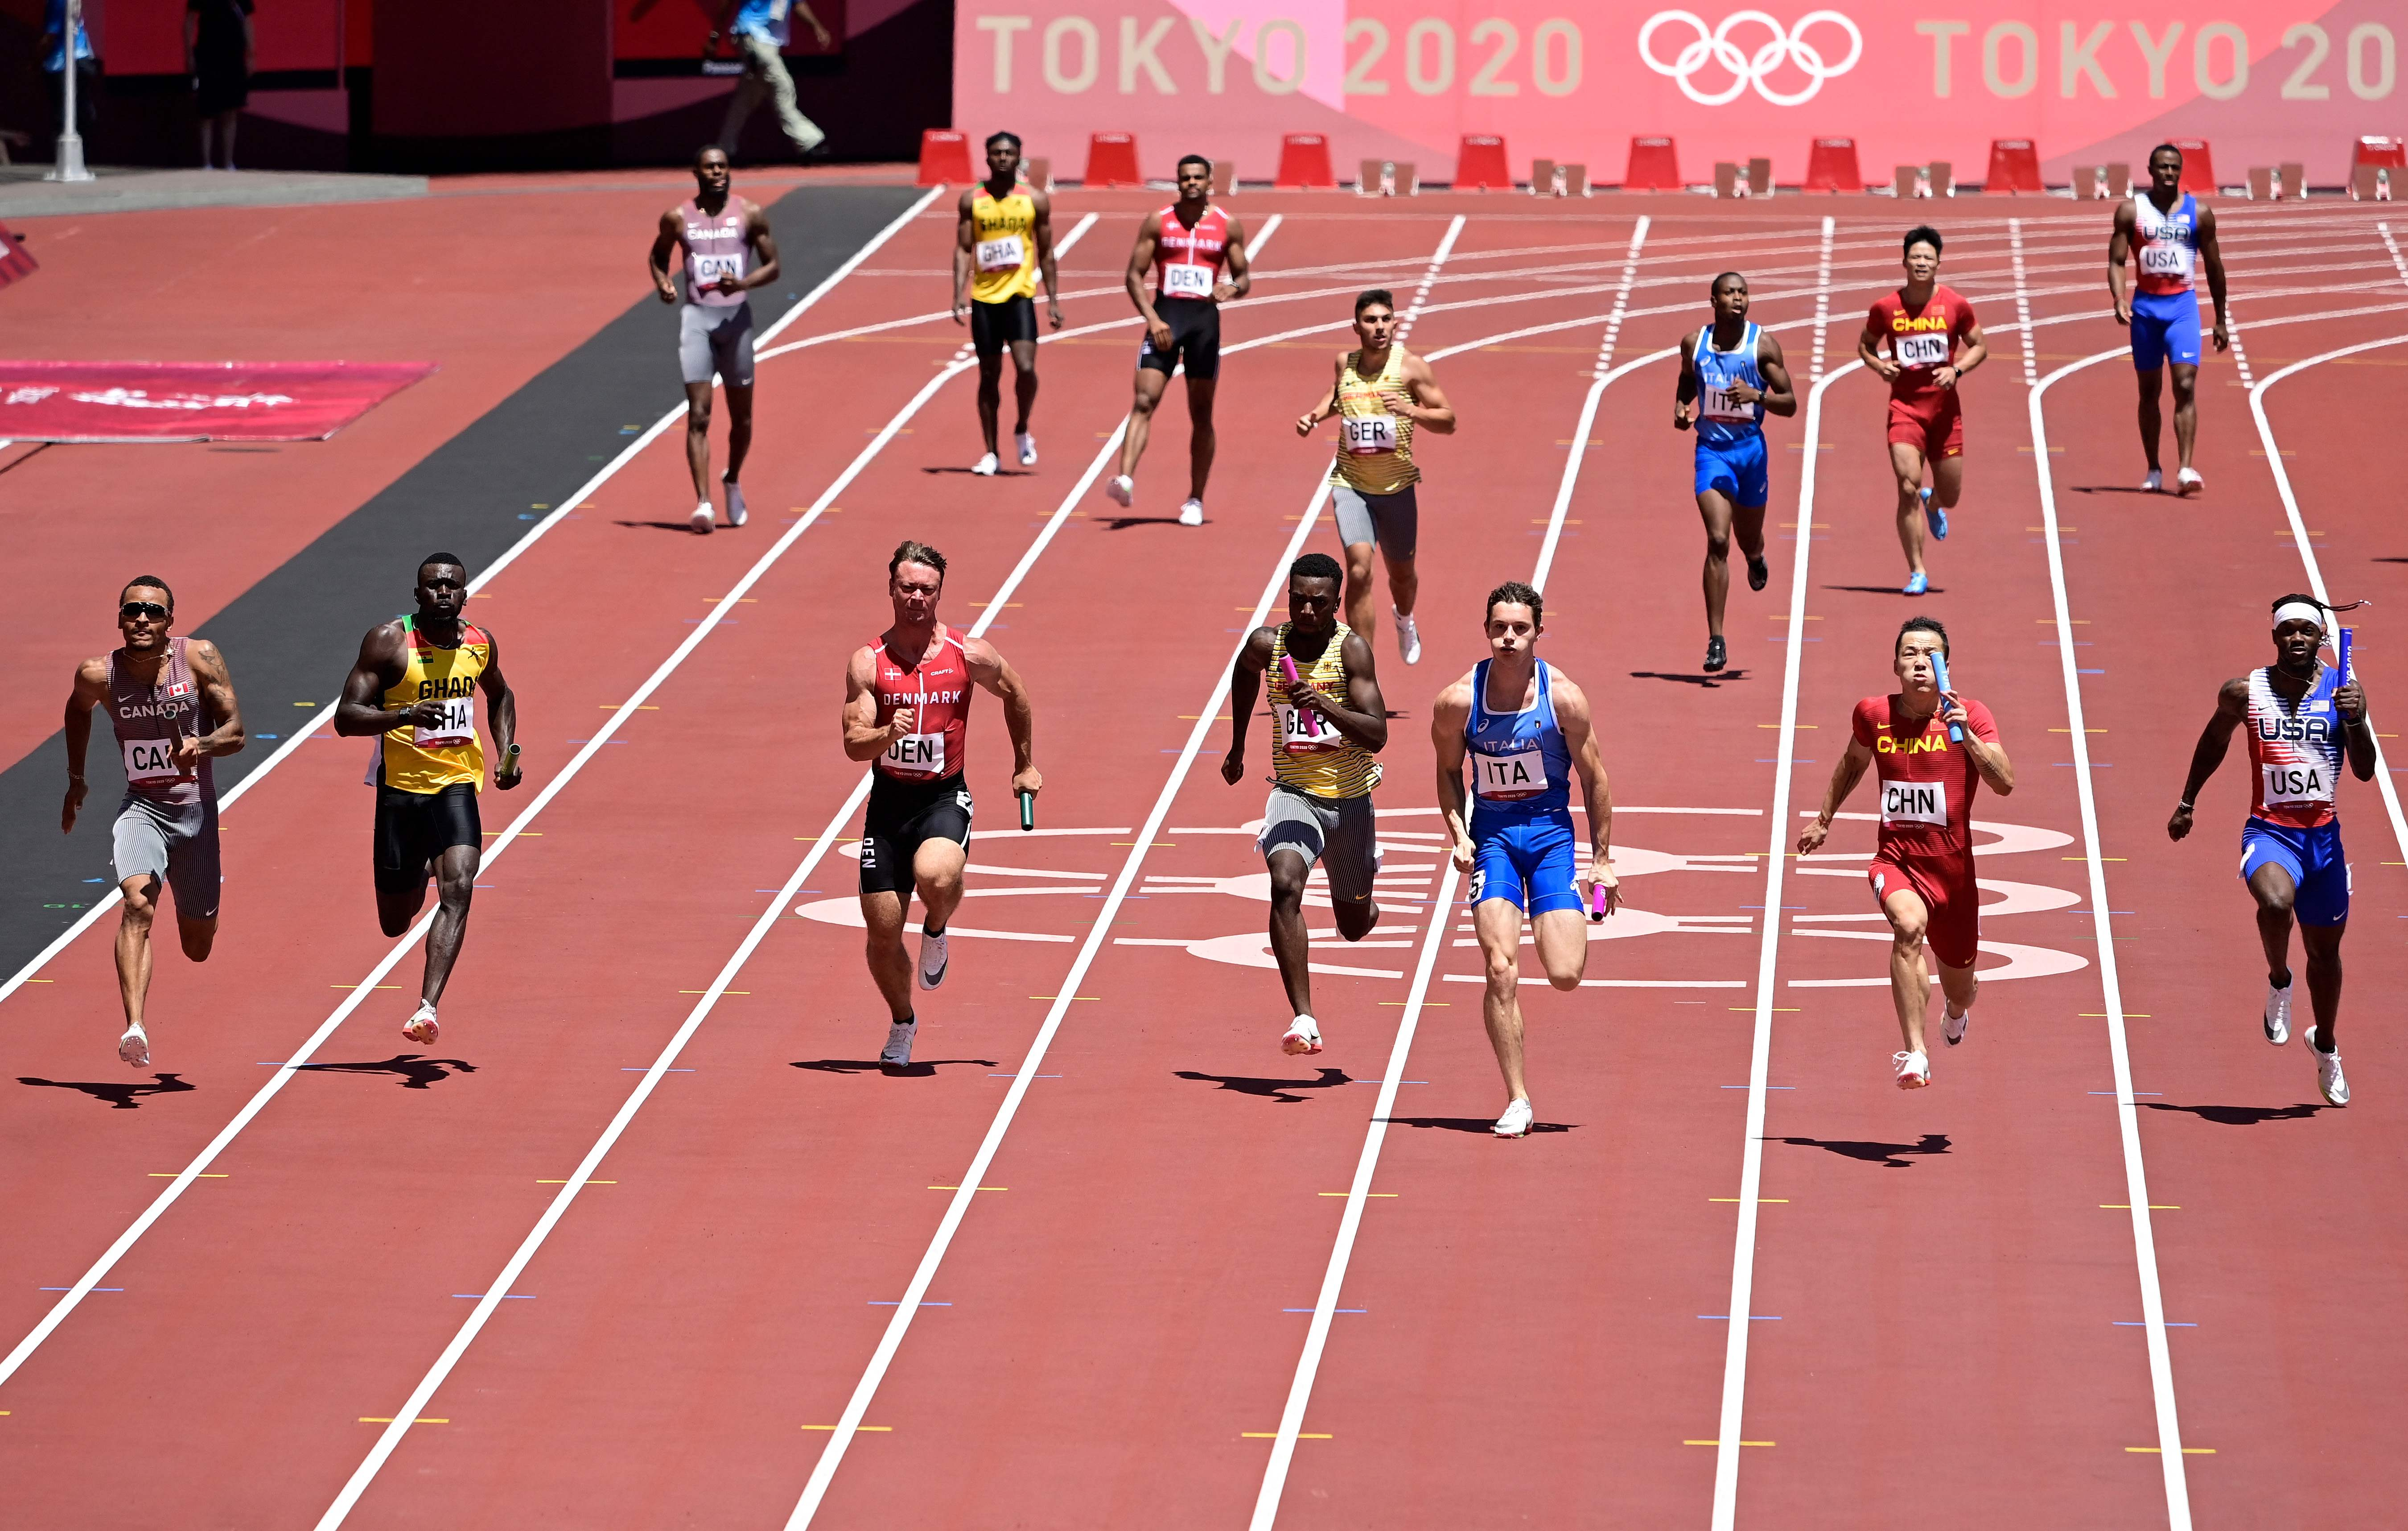 Carl Lewis rips U.S. men s 4x100-meter relay team after failing to make final:  Worse than the AAU kids I saw